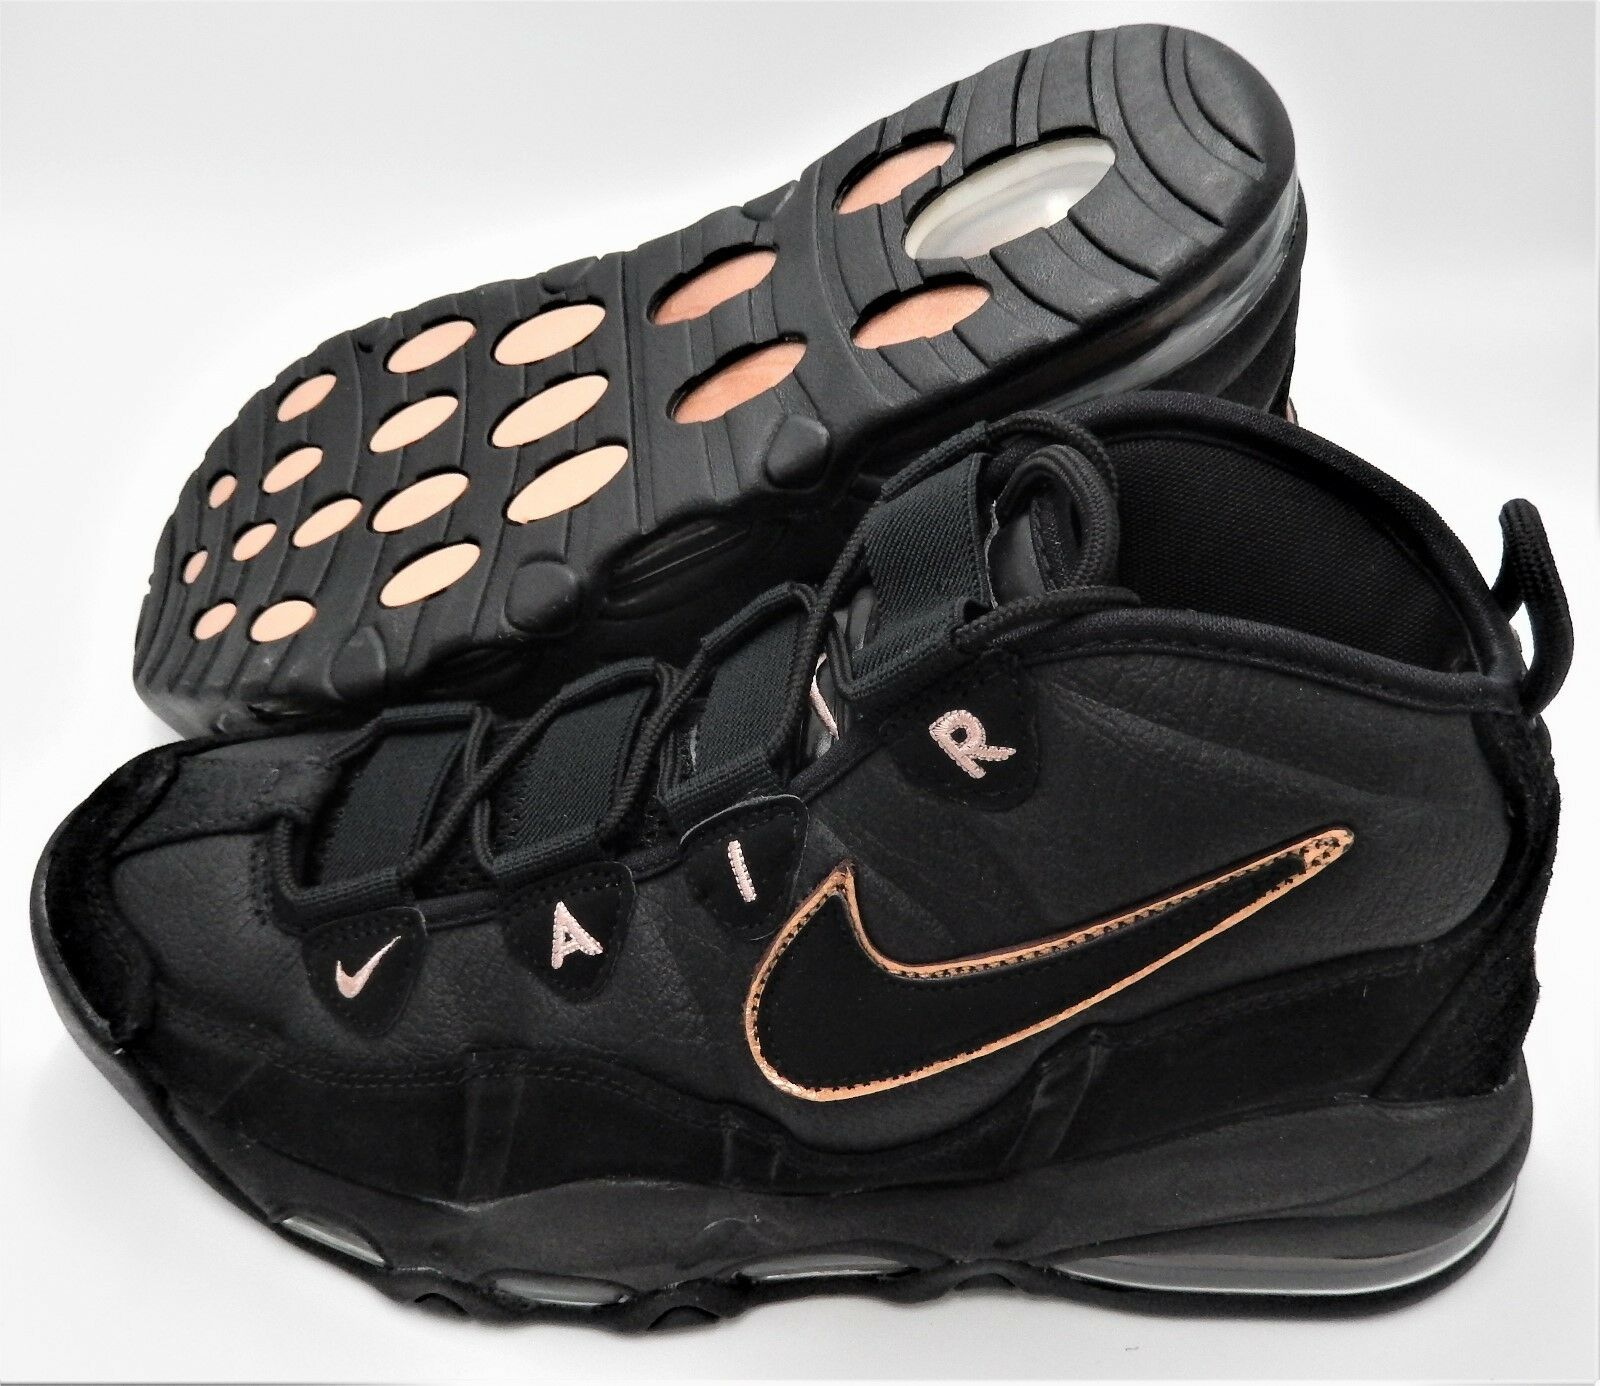 NEW NIKE AIR MAX UPTEMPO SIZE 8.5, 9, 9.5,12 BLACK BRONZE VINTAGE 311090 003